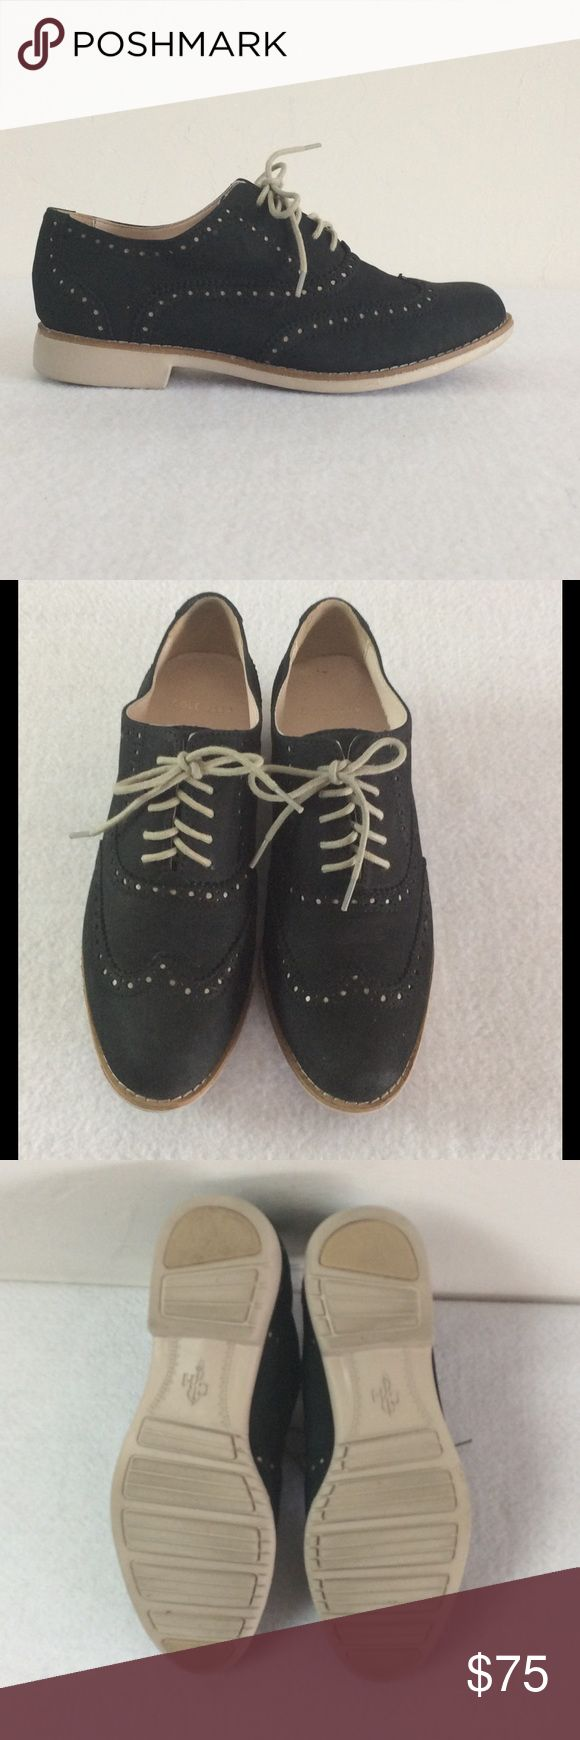 Cole Haan Oxford Shoes Cole Haan Outlet Gramercy Wing Oxford Shoes in very good condition.  Details:  *Size 5.5B *Color:  Black Newbuck Twine *Soft Newbuck leather upper *Fully lined *Fully padded sock lining *Lightweight EVA light outsole.  Slight scratch on left shoe inner heel.  #colehaan Cole Haan Shoes Flats & Loafers